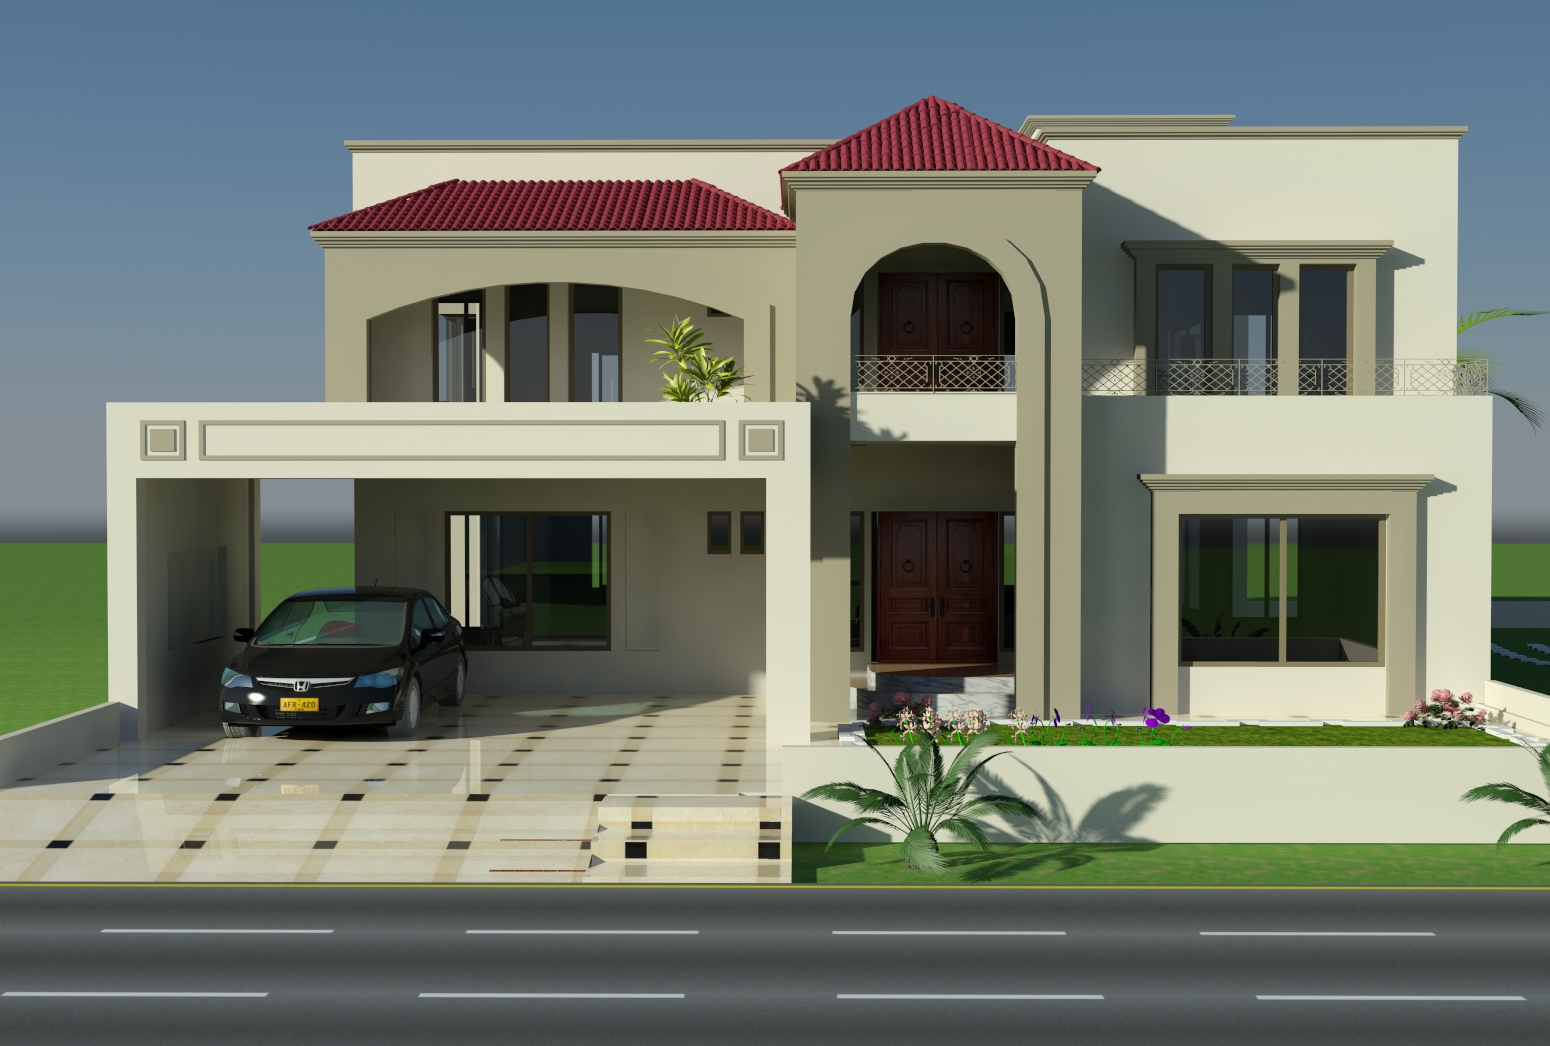 kanal plot house design europen style in bahria town lahore pakistan